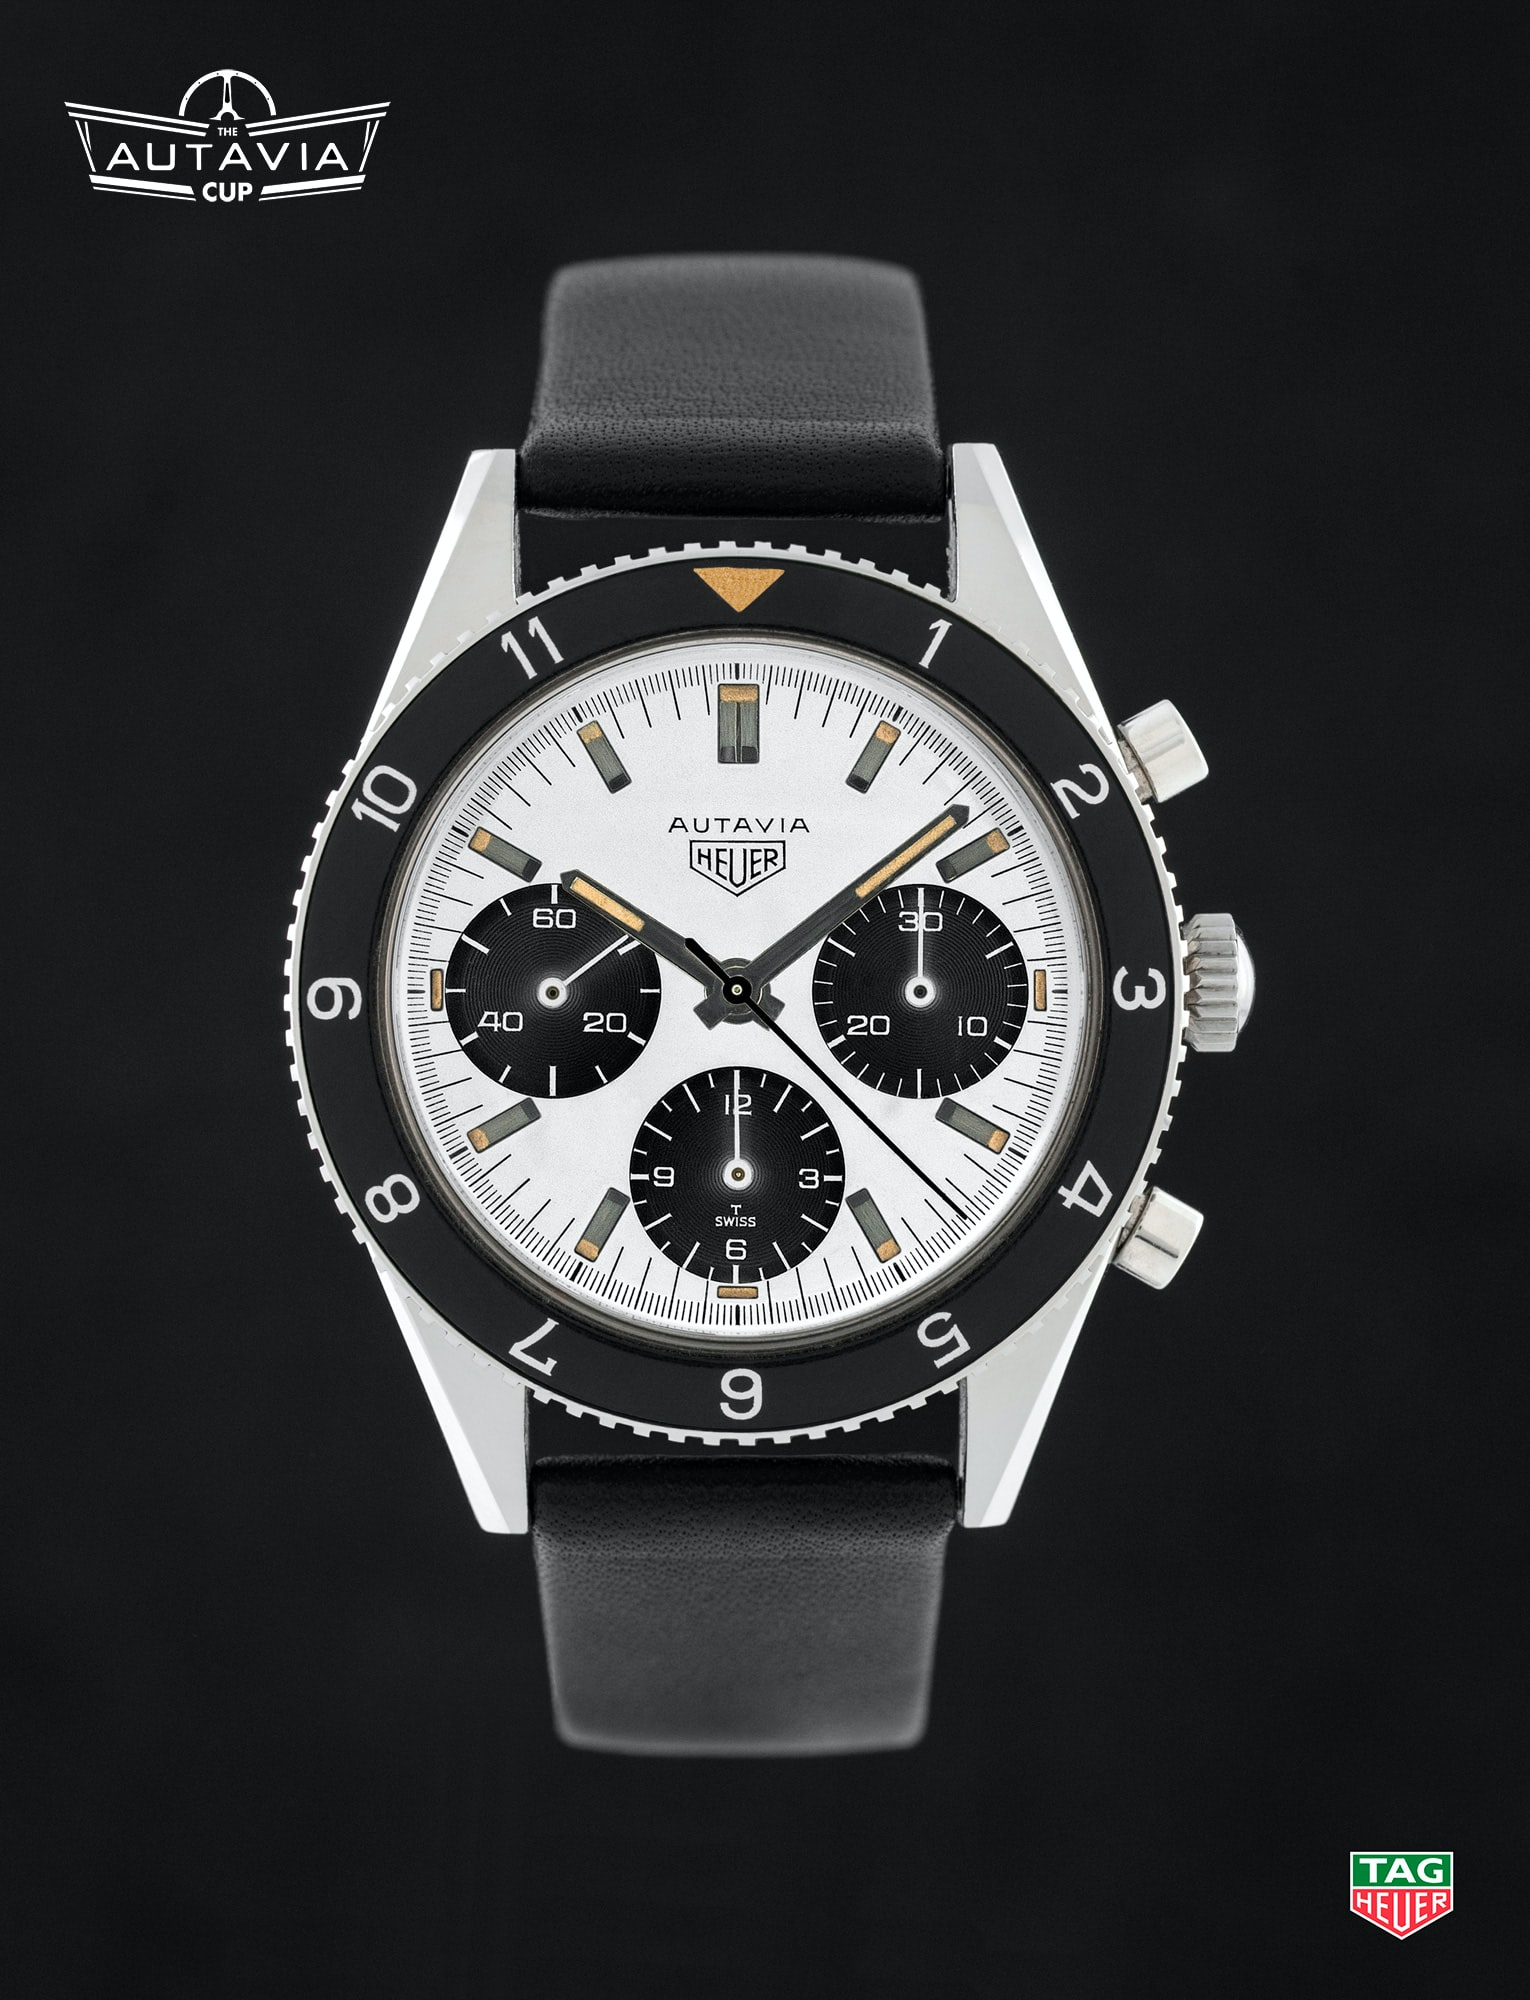 Heuer  TAG Heuer Will Relaunch The Autavia In 2017 – And Fans Get To Choose The Model TAG Heuer Will Relaunch The Autavia In 2017 – And Fans Get To Choose The Model 13 2446 Trans SN